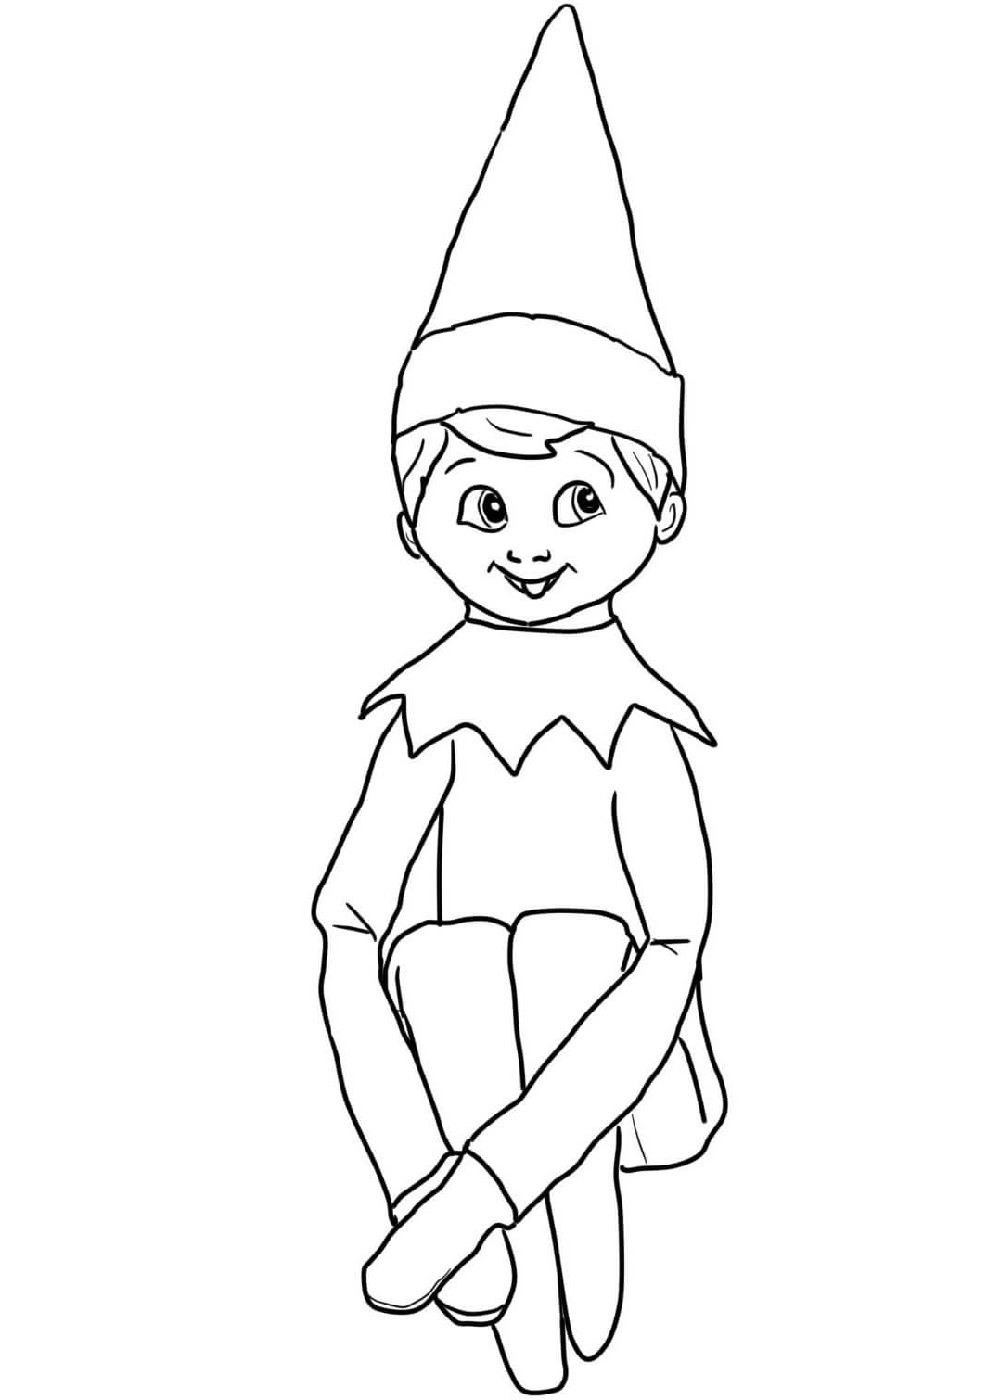 Elf On The Shelf Coloring Sheets To Print Educative Printable Santa Coloring Pages Christmas Coloring Sheets Printable Christmas Coloring Pages